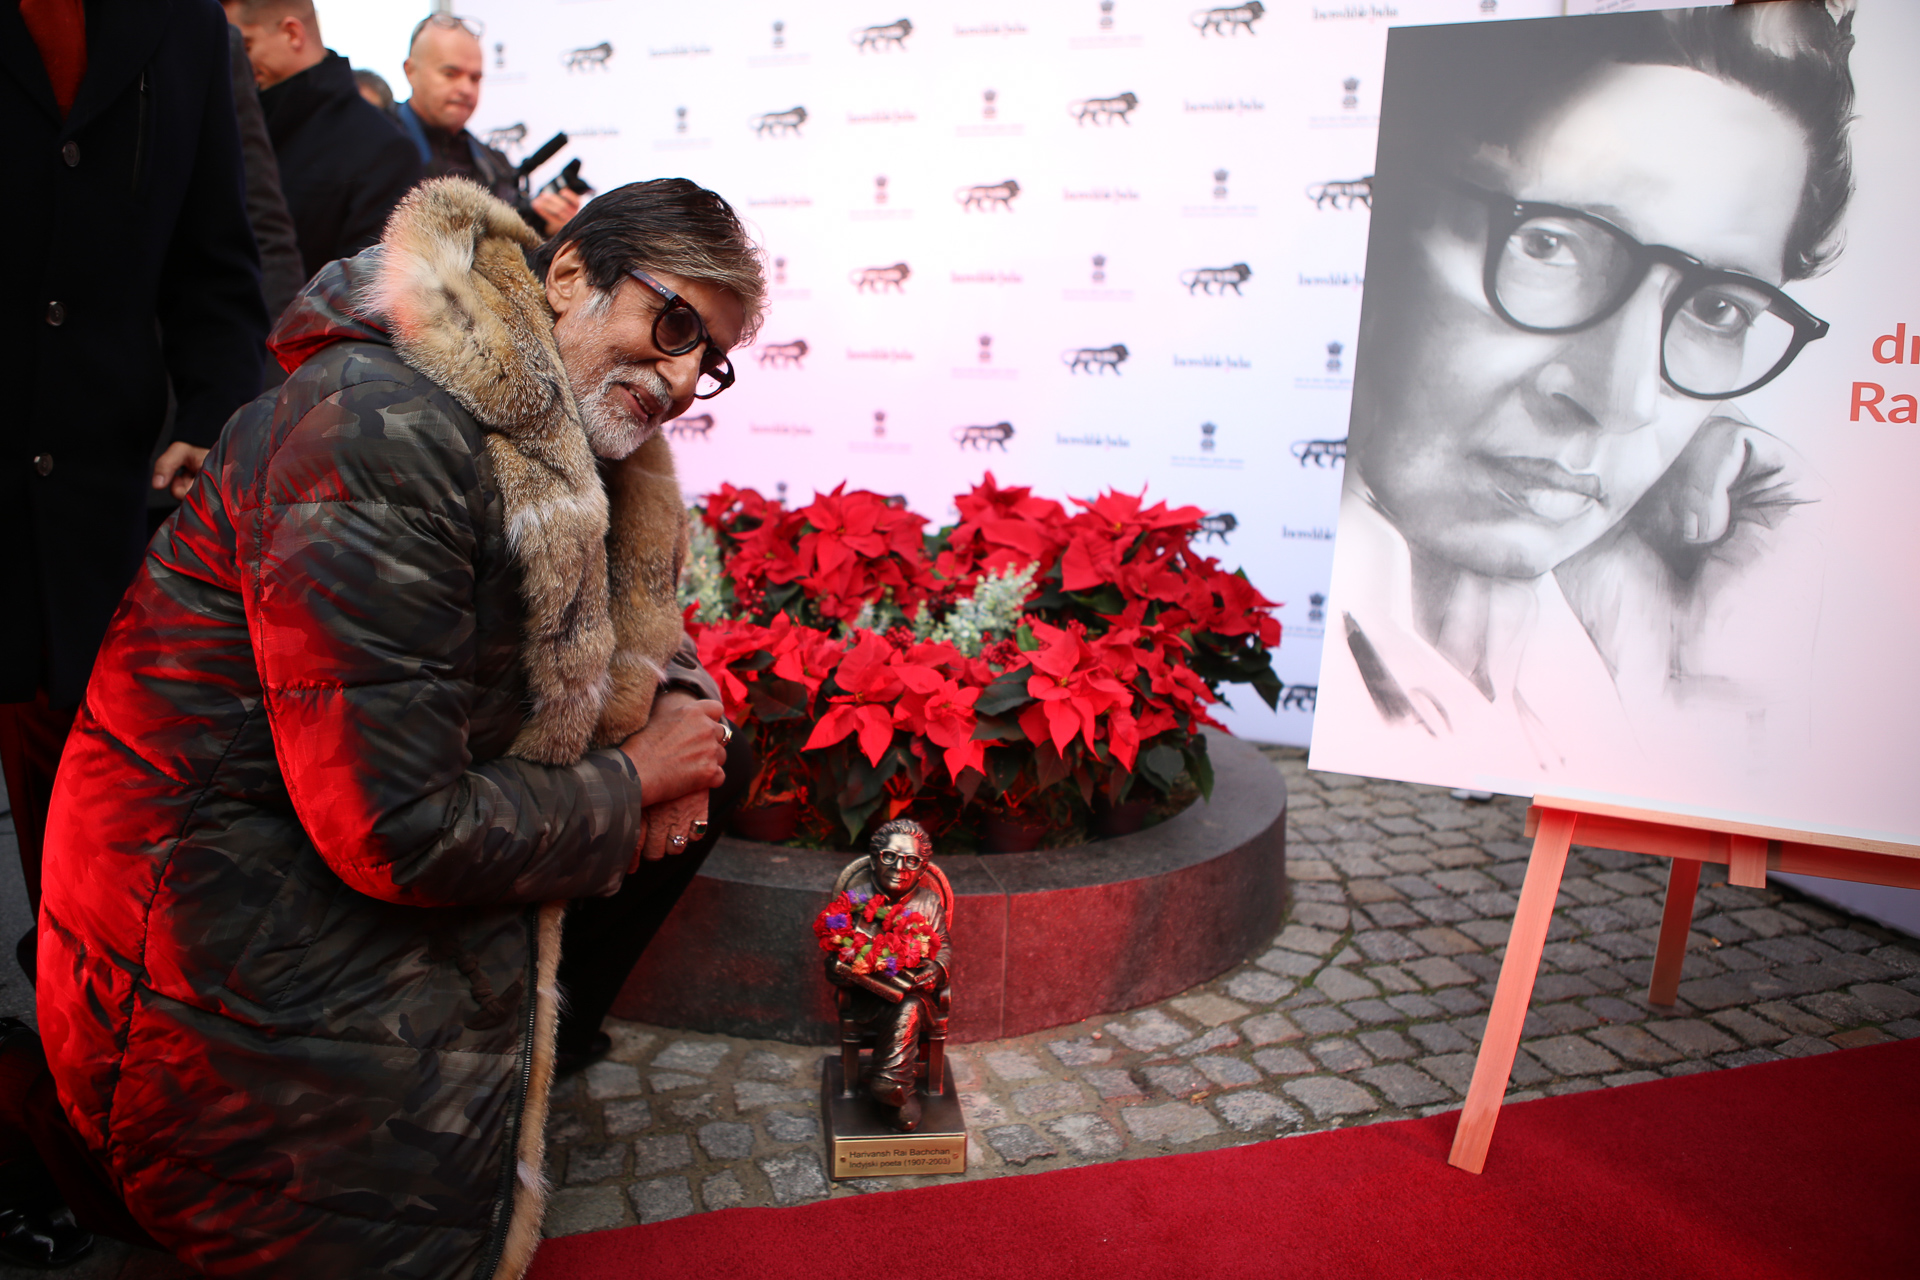 Amitabh Bachchan also unveiled a commemorative sculpture honouring his poet father, the late Harivansh Rai Bachchan